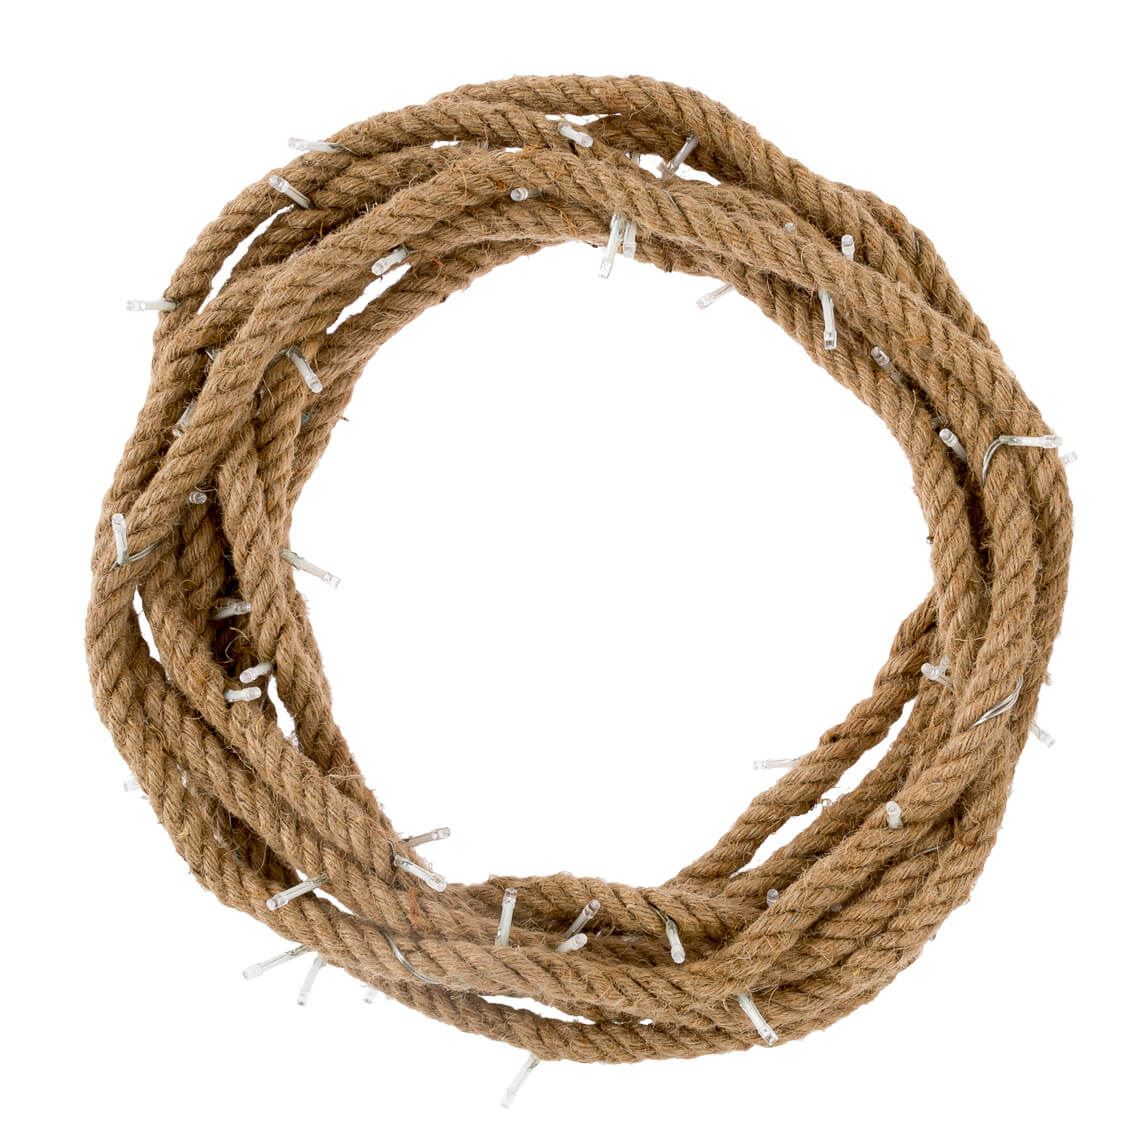 String Lights Size W 1cm x D 1cm x H 1000cm in Natural Rope Freedom